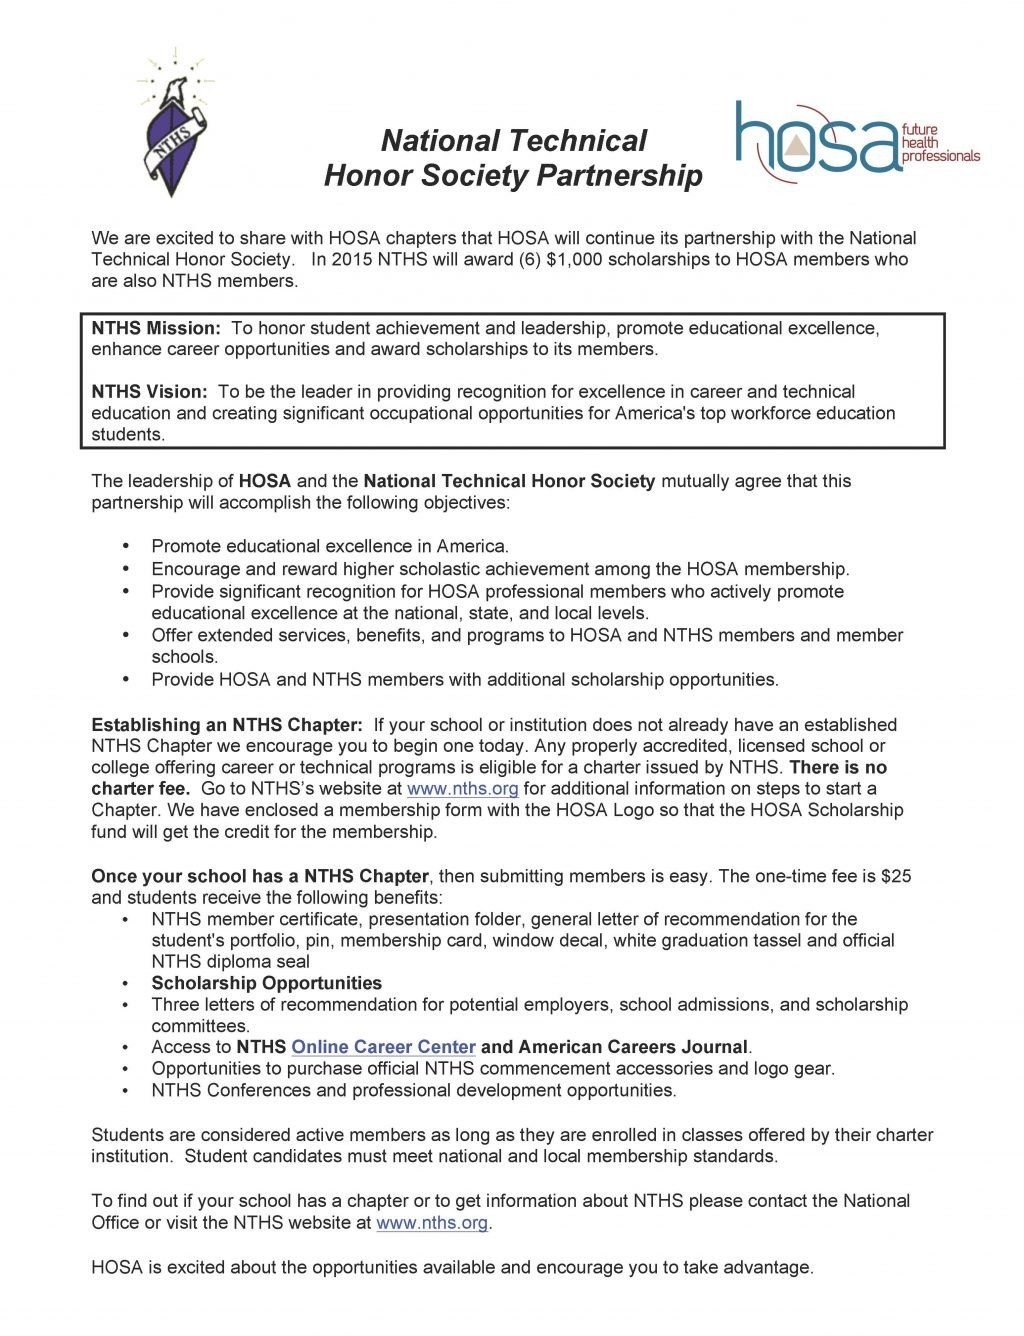 007 National Junior Honor Society Essay Example Cover Letter Nths Page 1 Template 1024x1336 Unique Honors Conclusion Samples Character Large